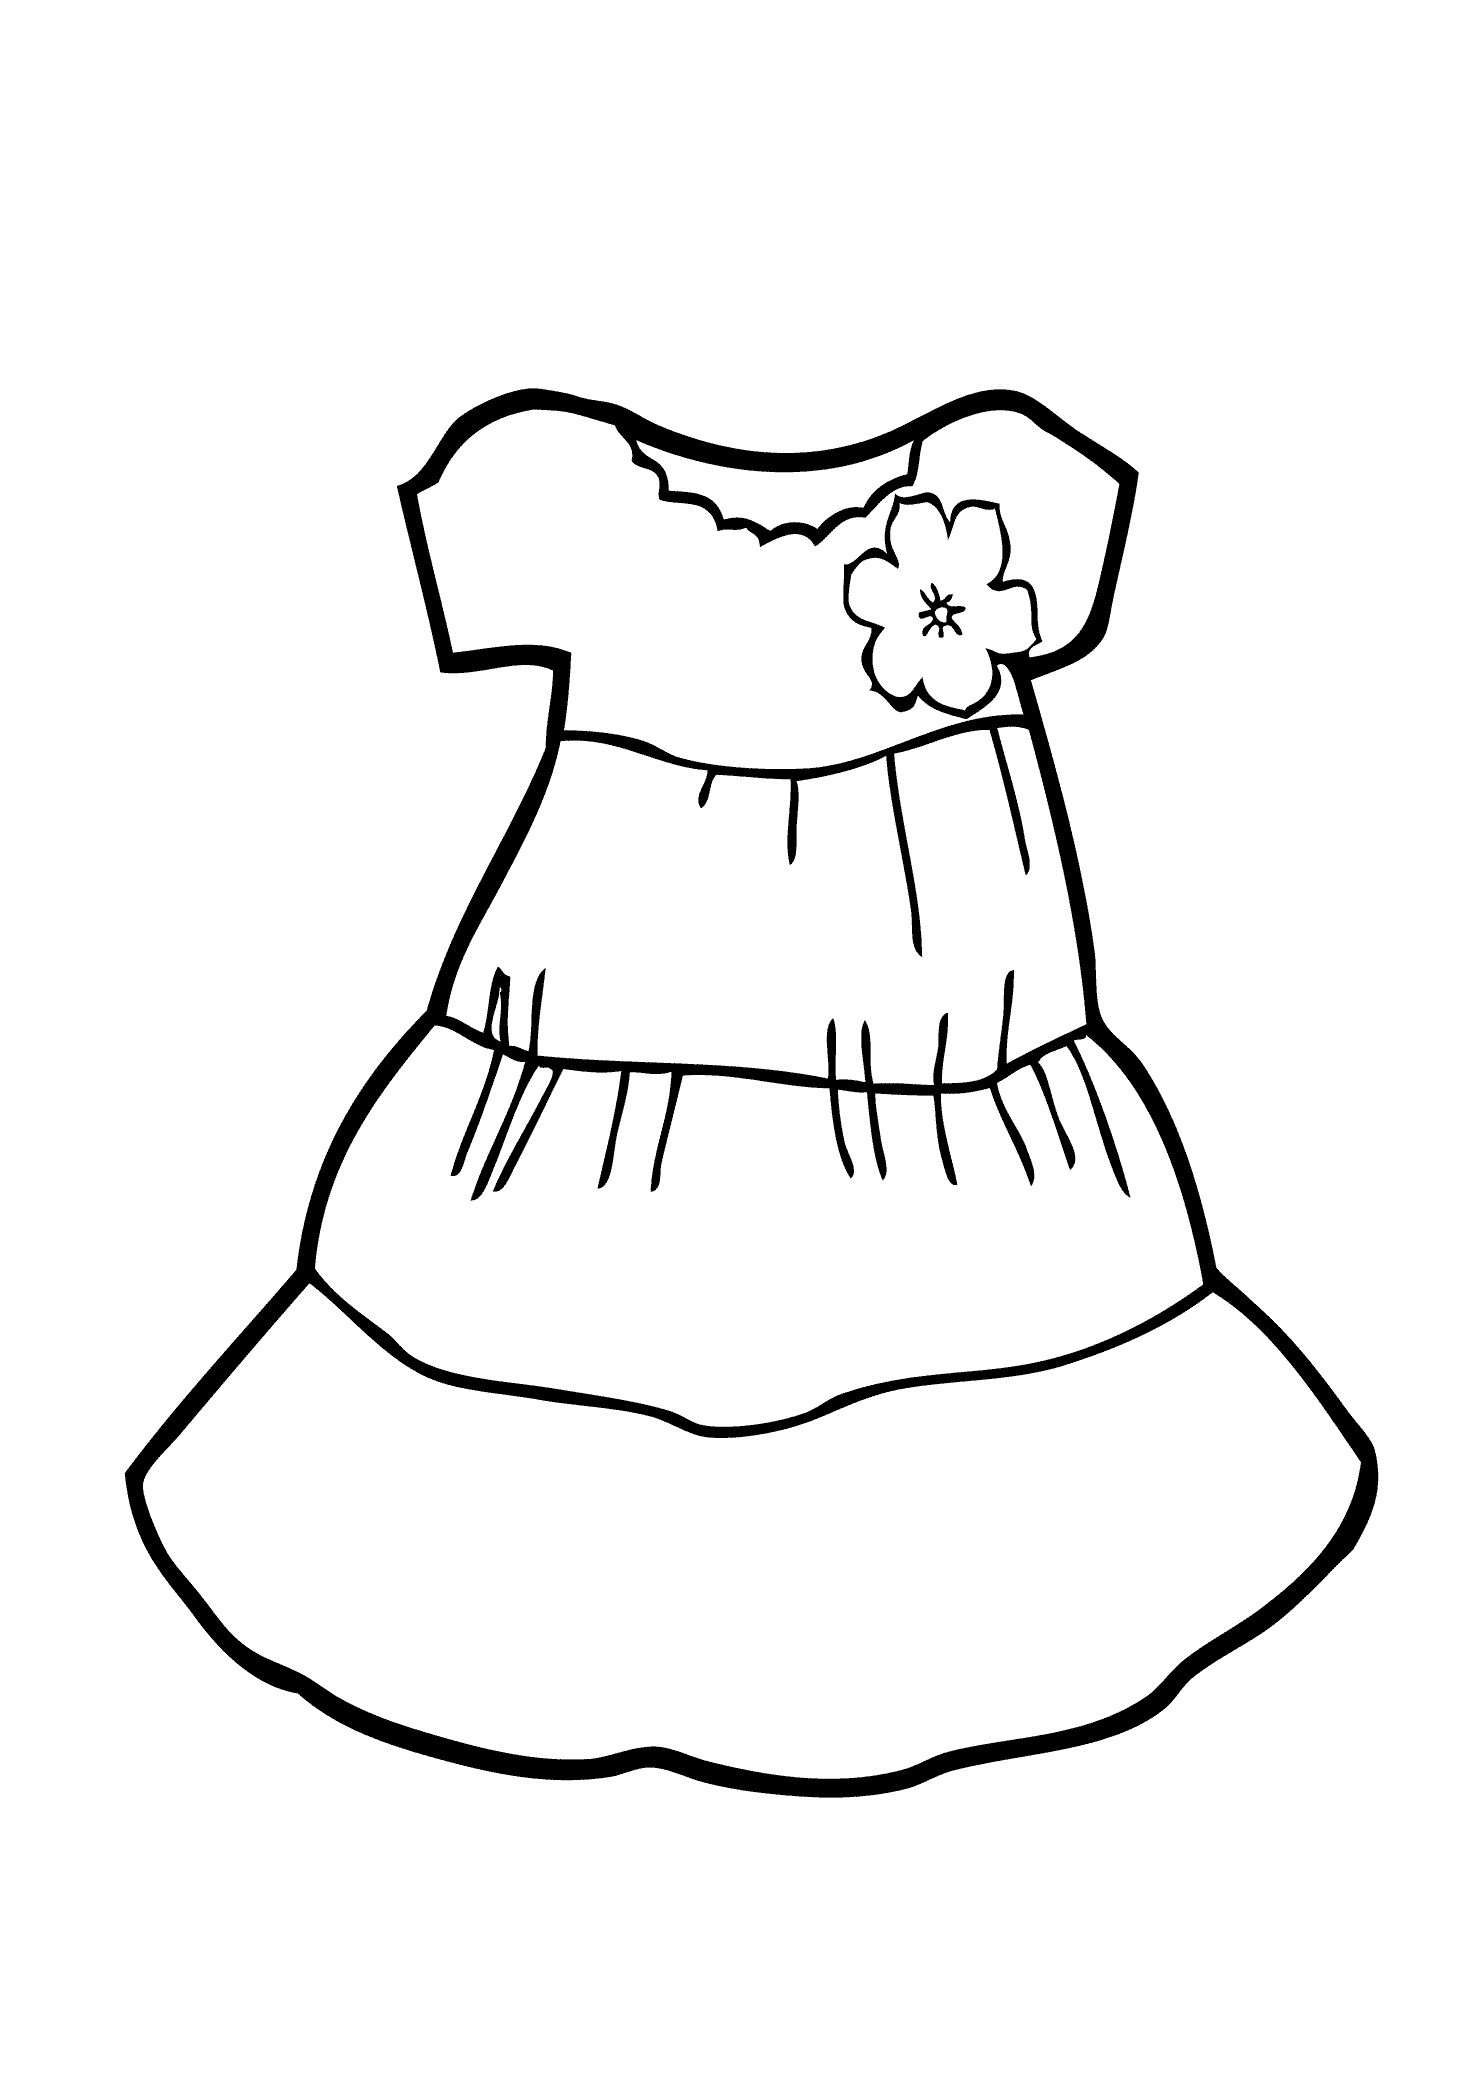 Printable Coloring Pages For Girls With Shirts  Focus Coloring Pages Summer Clothes 2 Colou